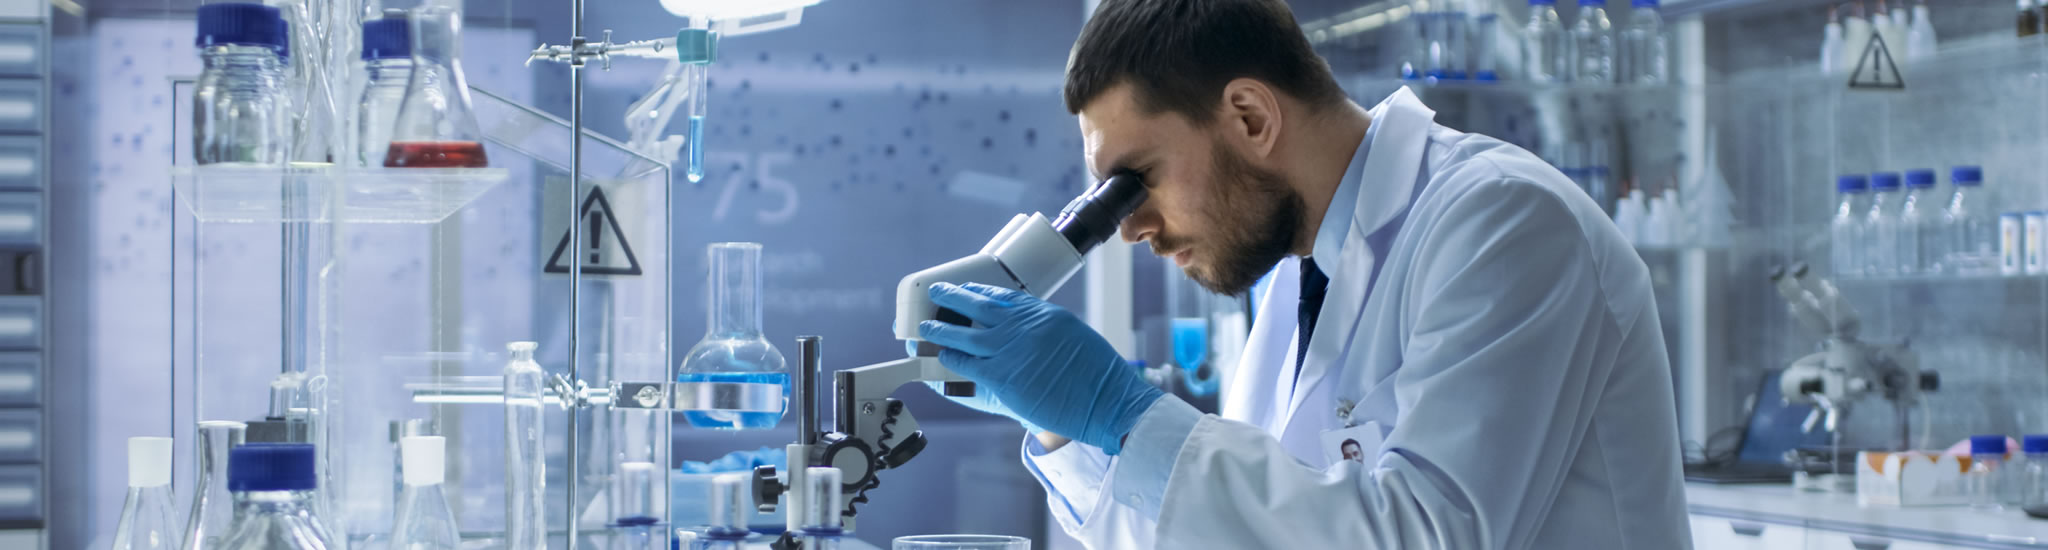 Medical Laboratory Sciences | College of Health Professions